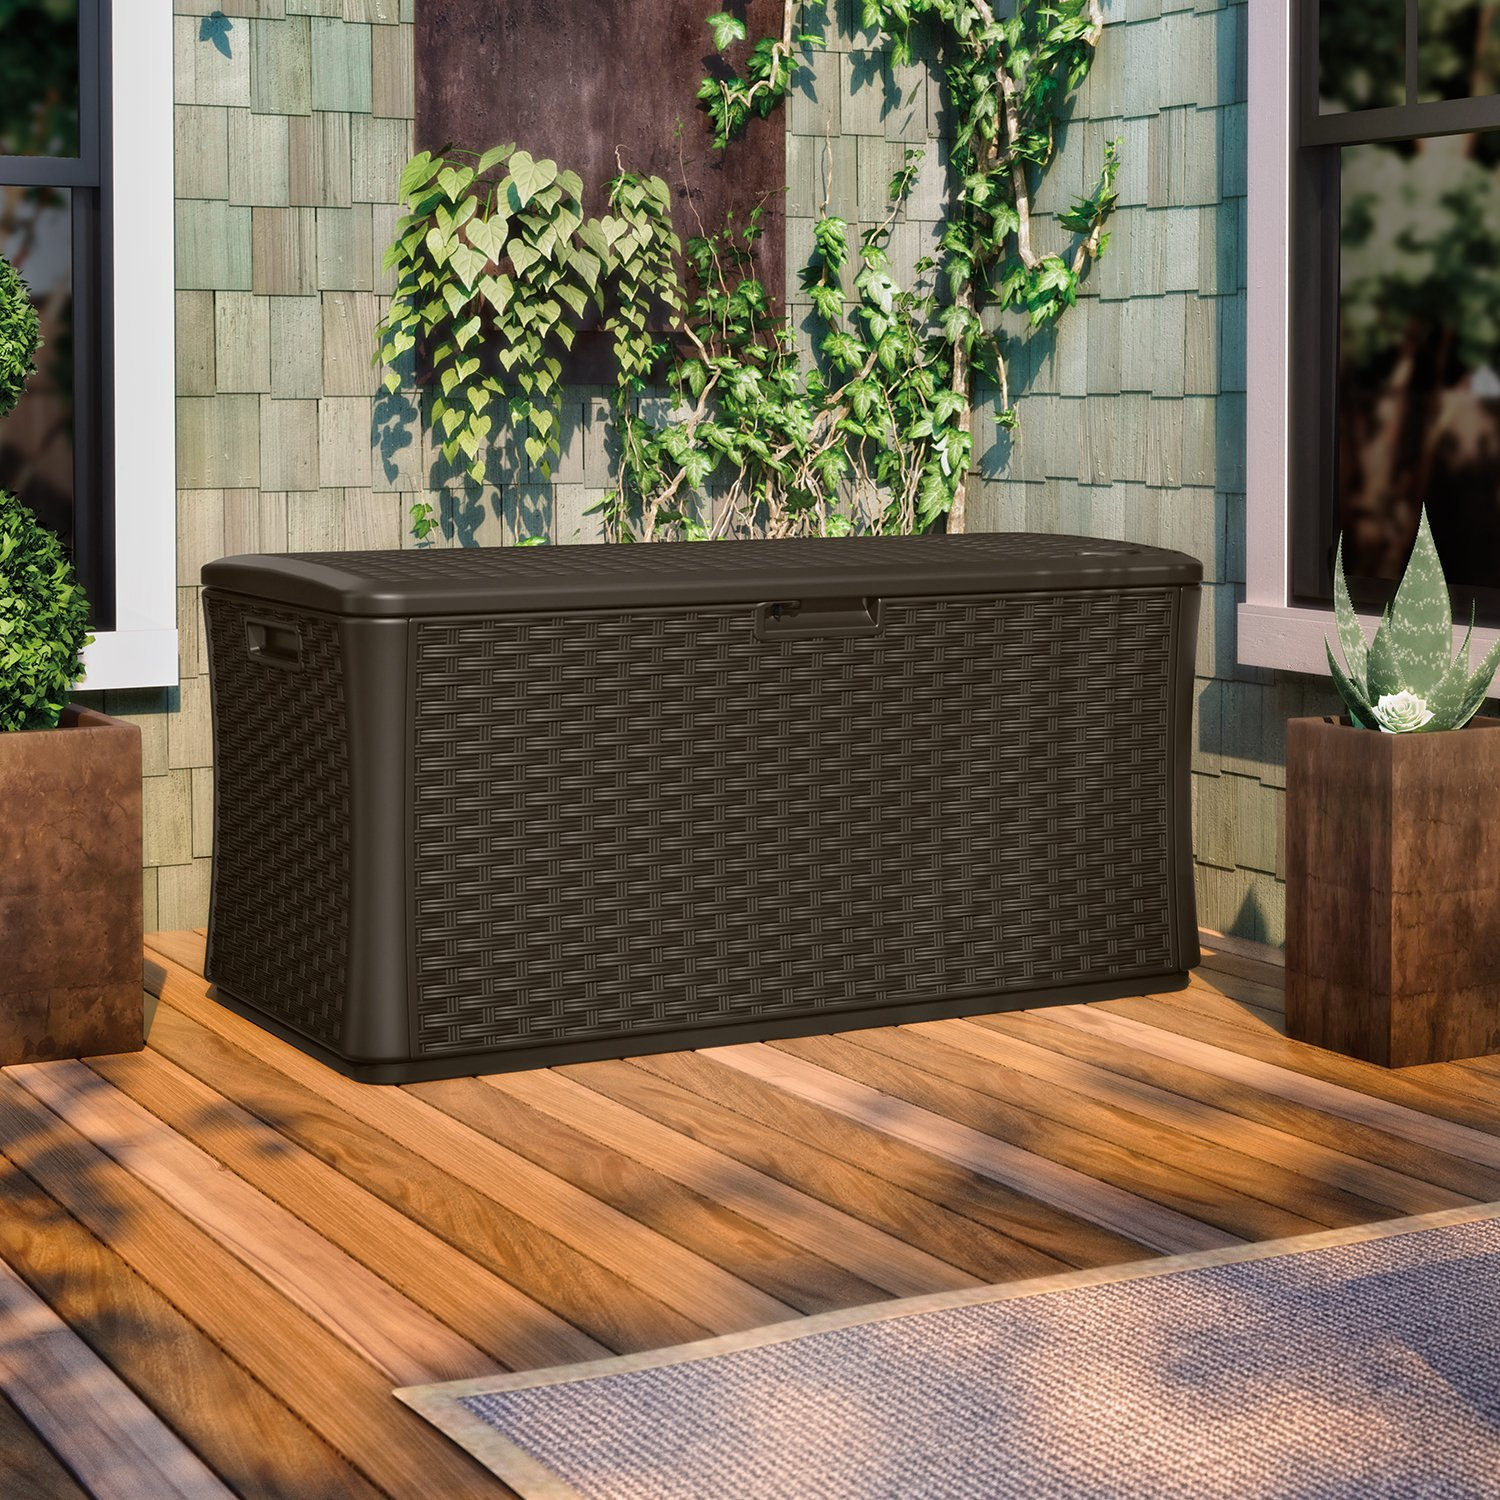 The Best Deck Boxes For All Your Outdoor Storage Needs OutsideModern